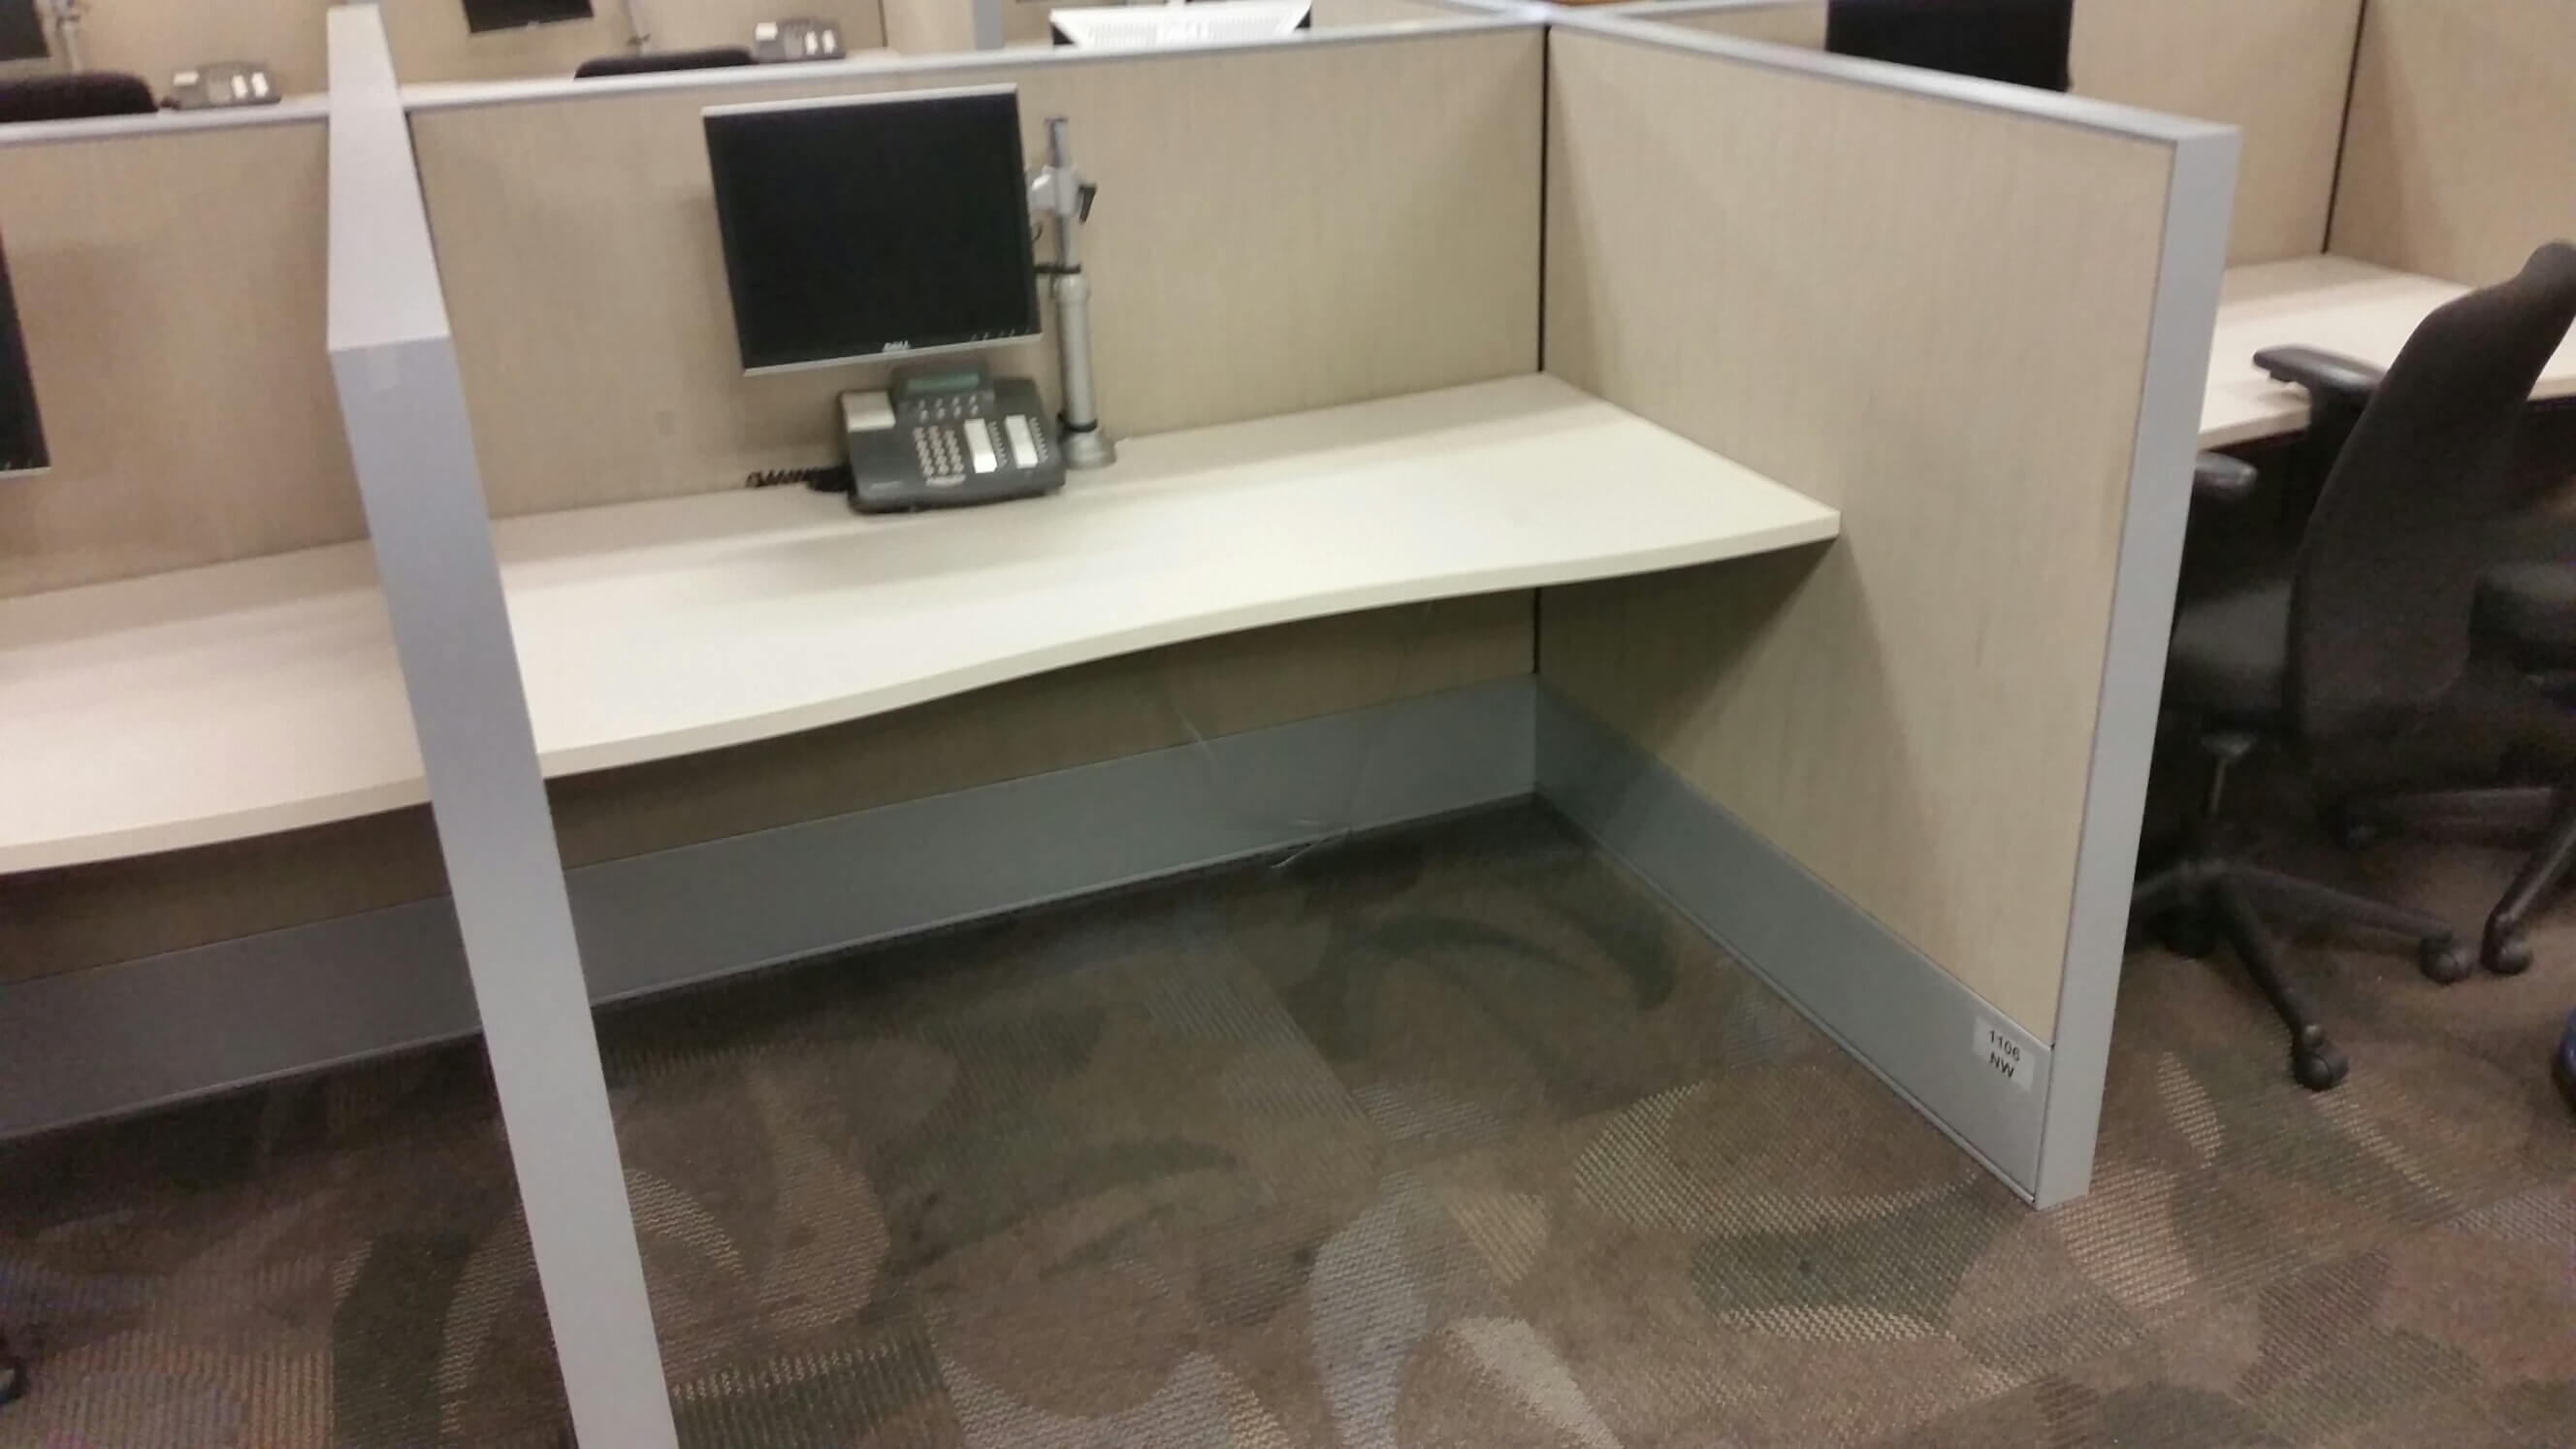 Used cubicles with Medium panels from Haworth - These used cubicles are good choice for the company who is looking for call center furniture